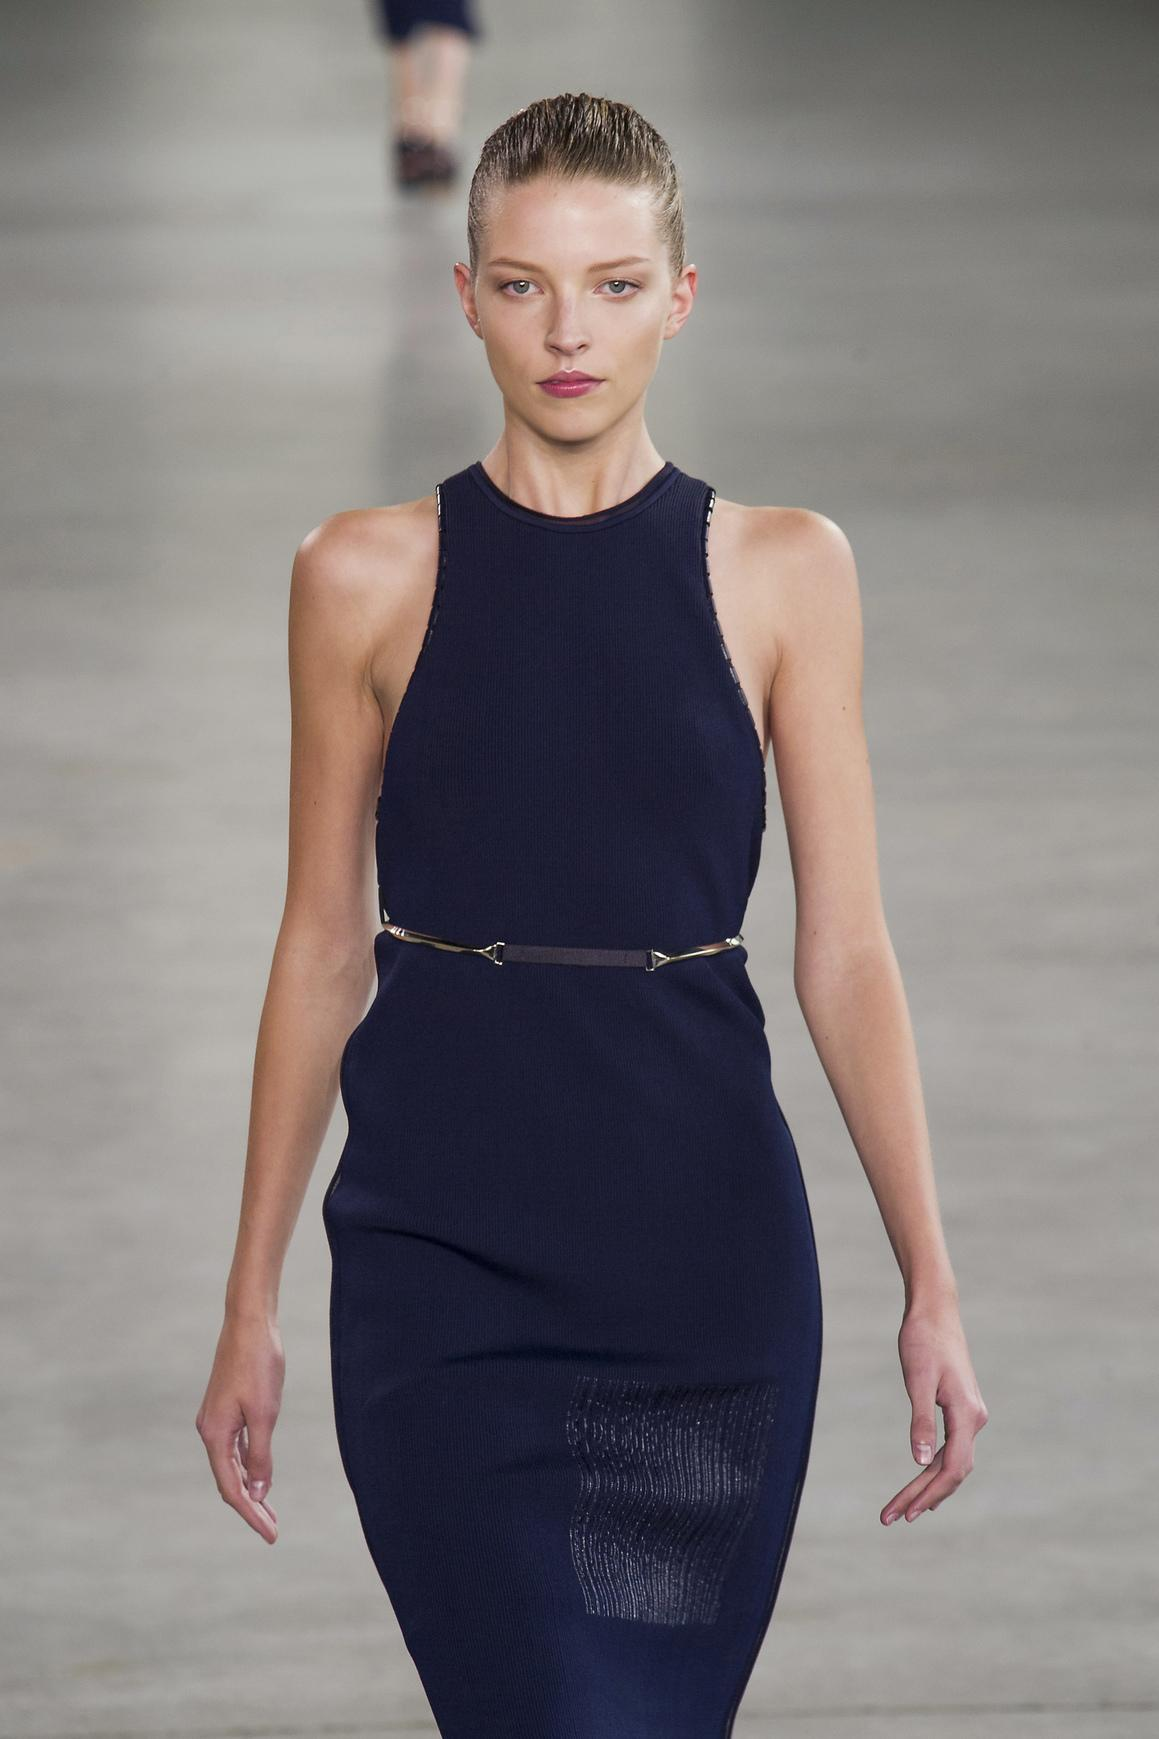 Elegant, striking and in demand – Elena Peter is this week's model to watch  http://t.co/V9VNdKR8LQ http://t.co/C2lNzepnzY